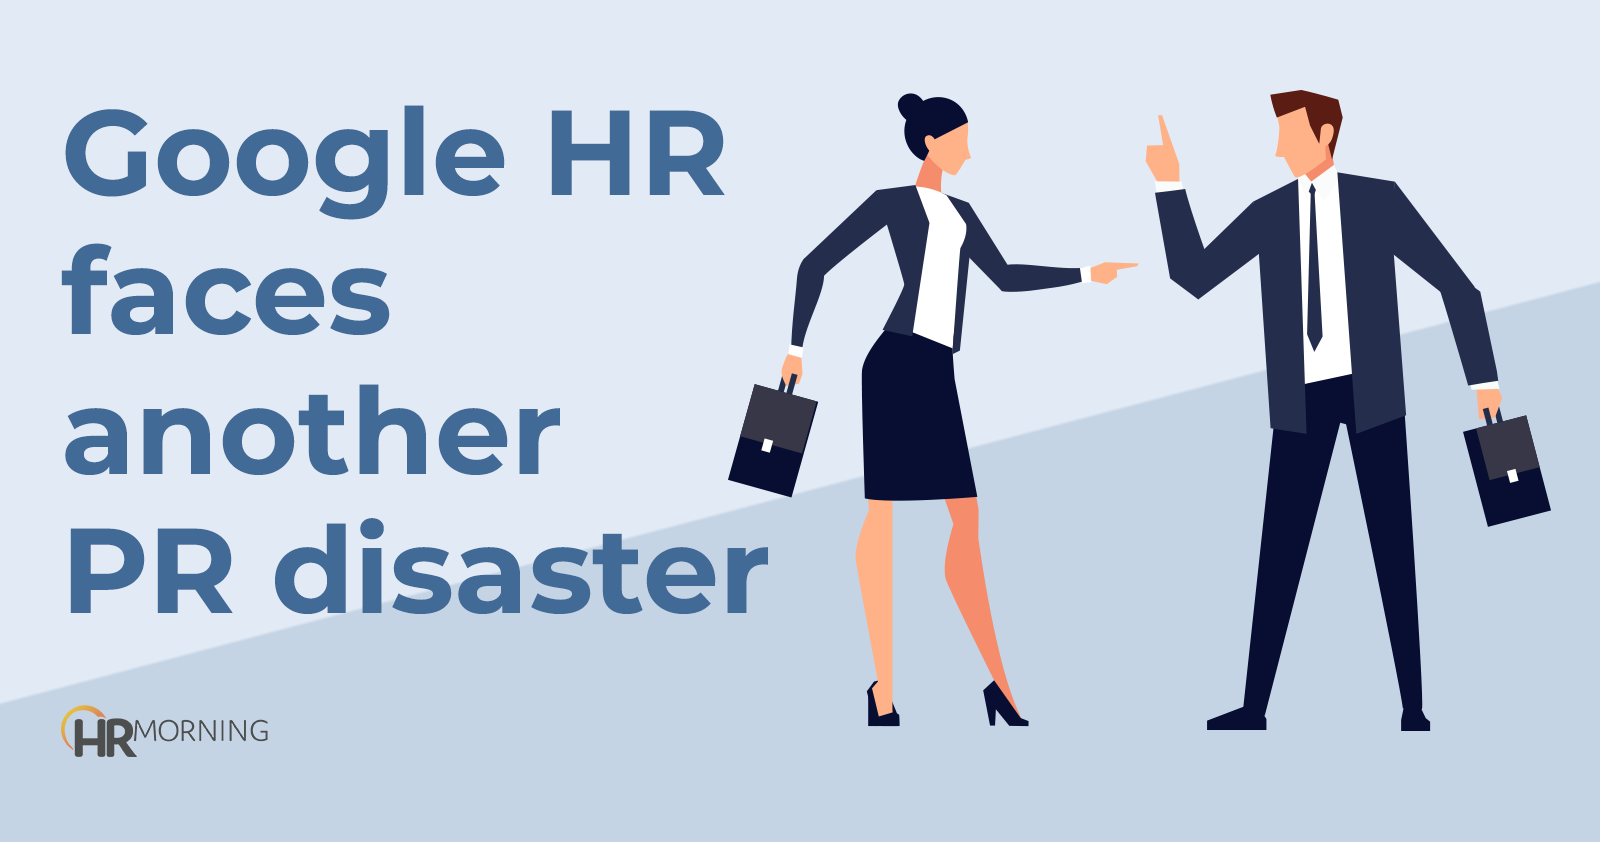 Google HR faces another PR disaster